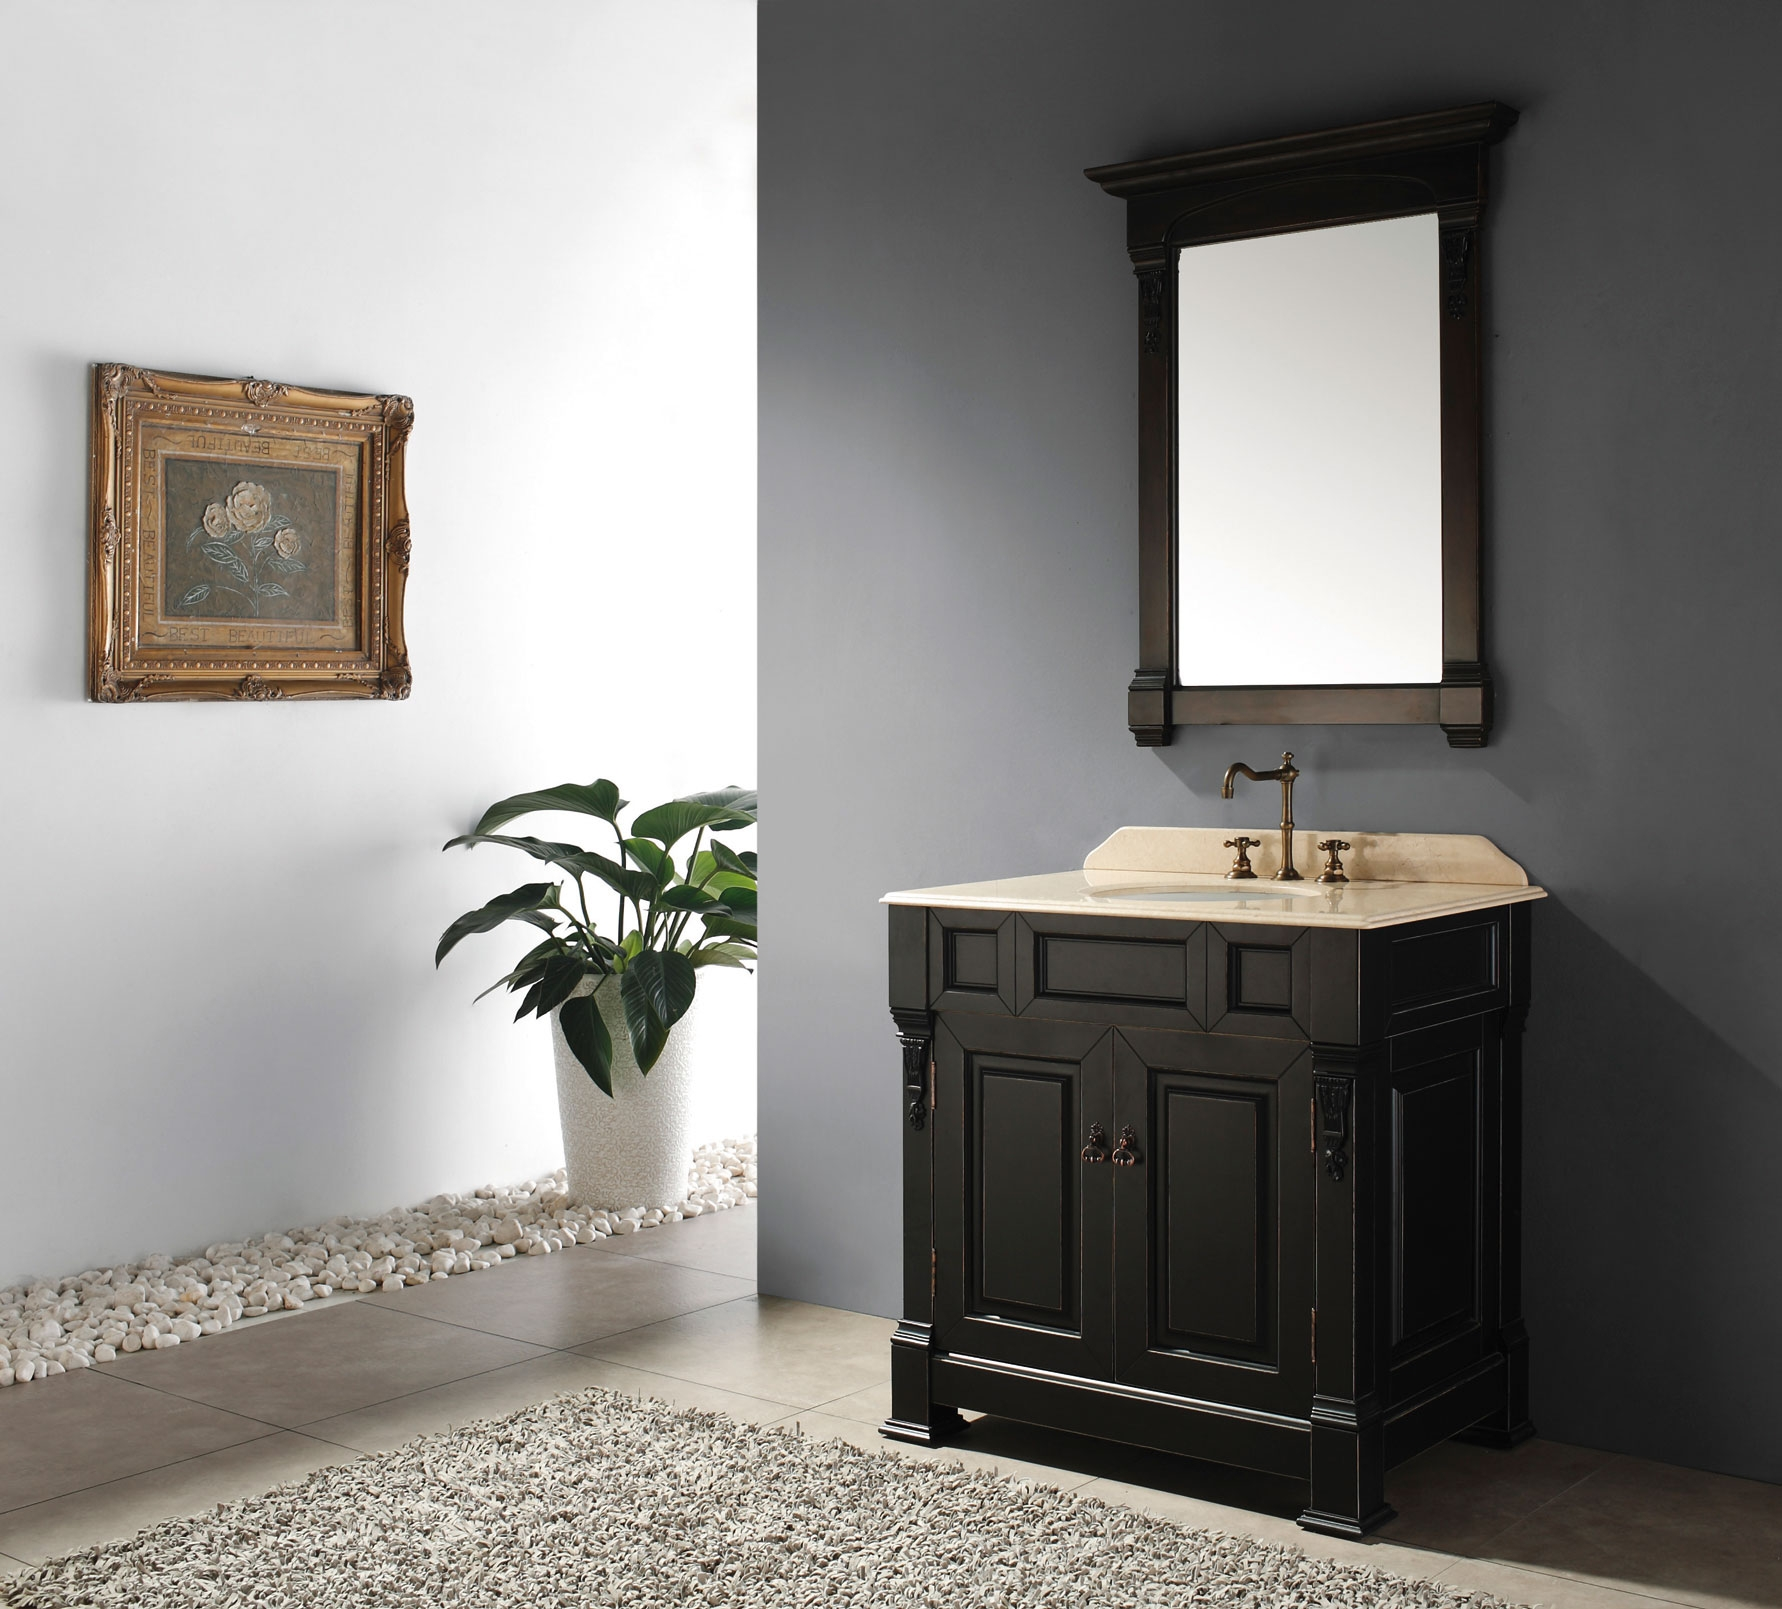 Antique Looking Bathroom Mirrors Home Pertaining To Retro Bathroom Mirrors (Image 3 of 15)